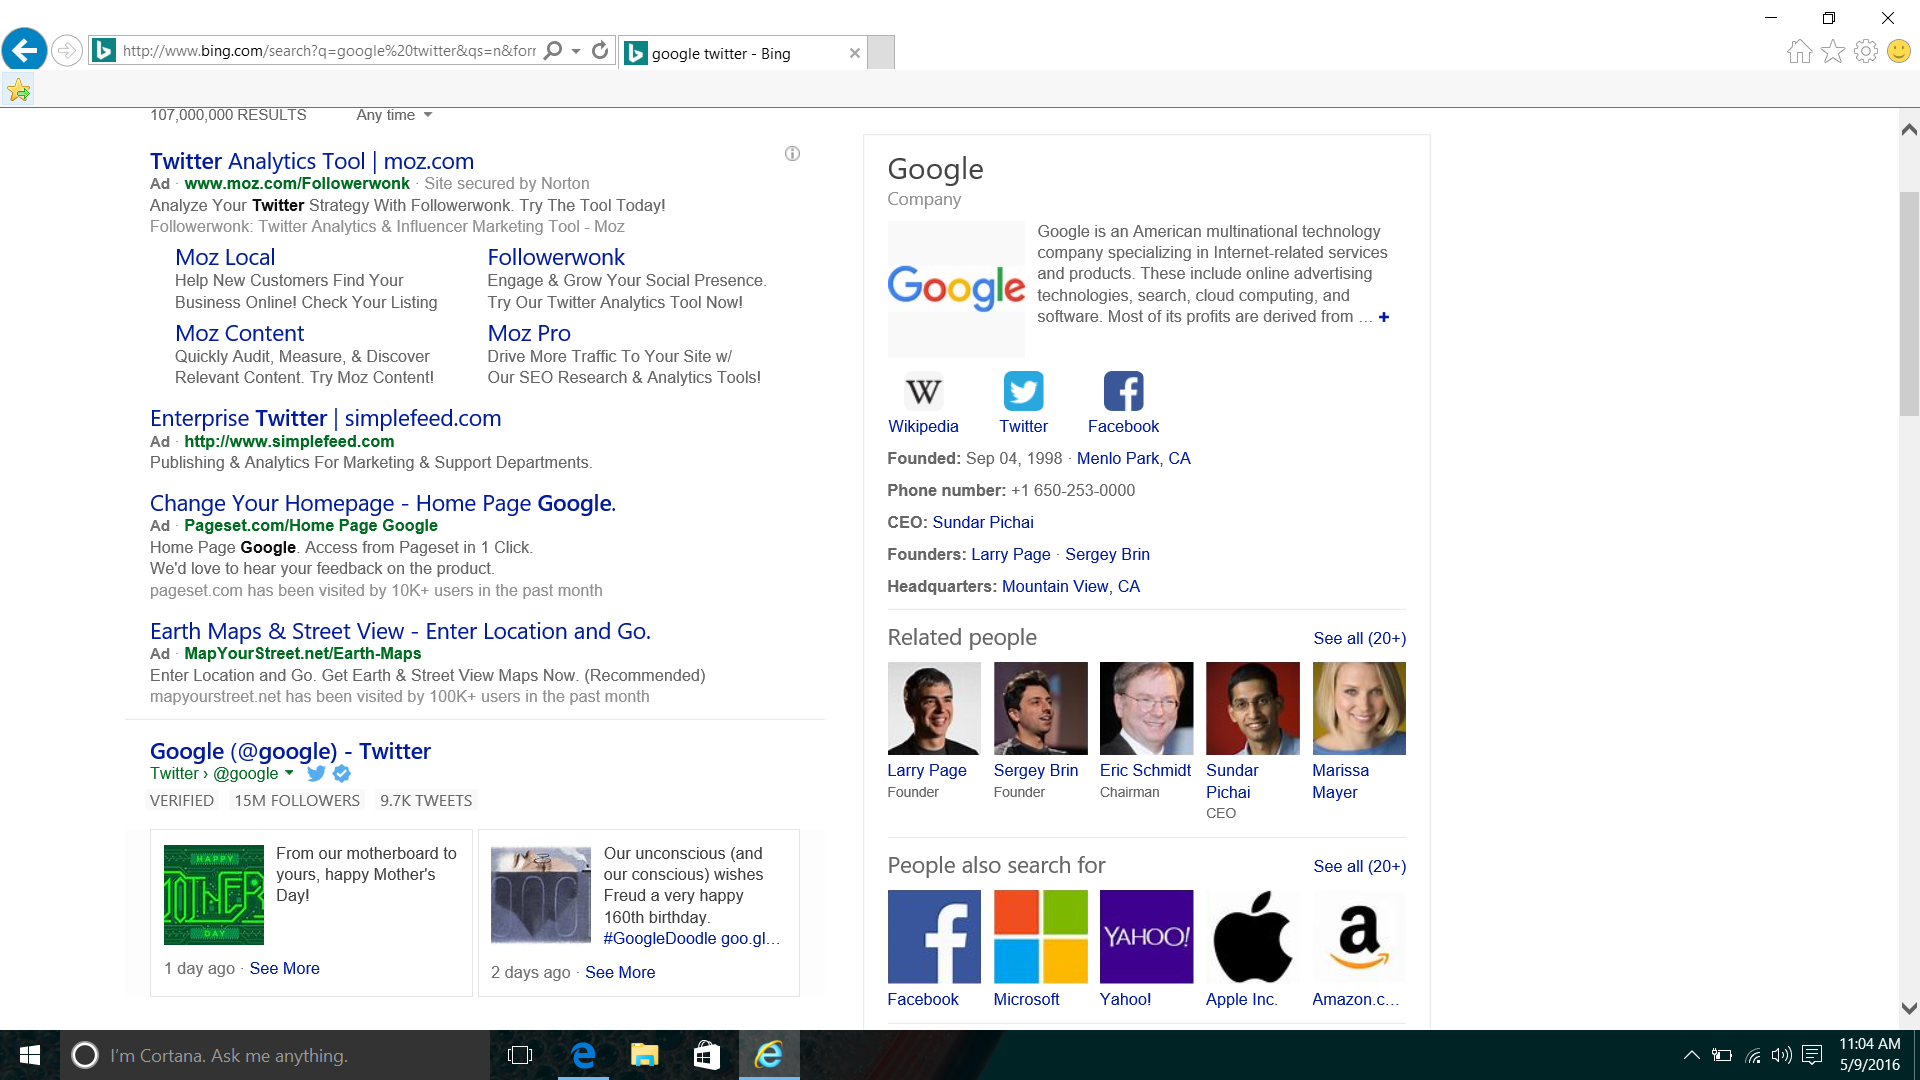 Tweets in Bing search results in Internet Explorer.